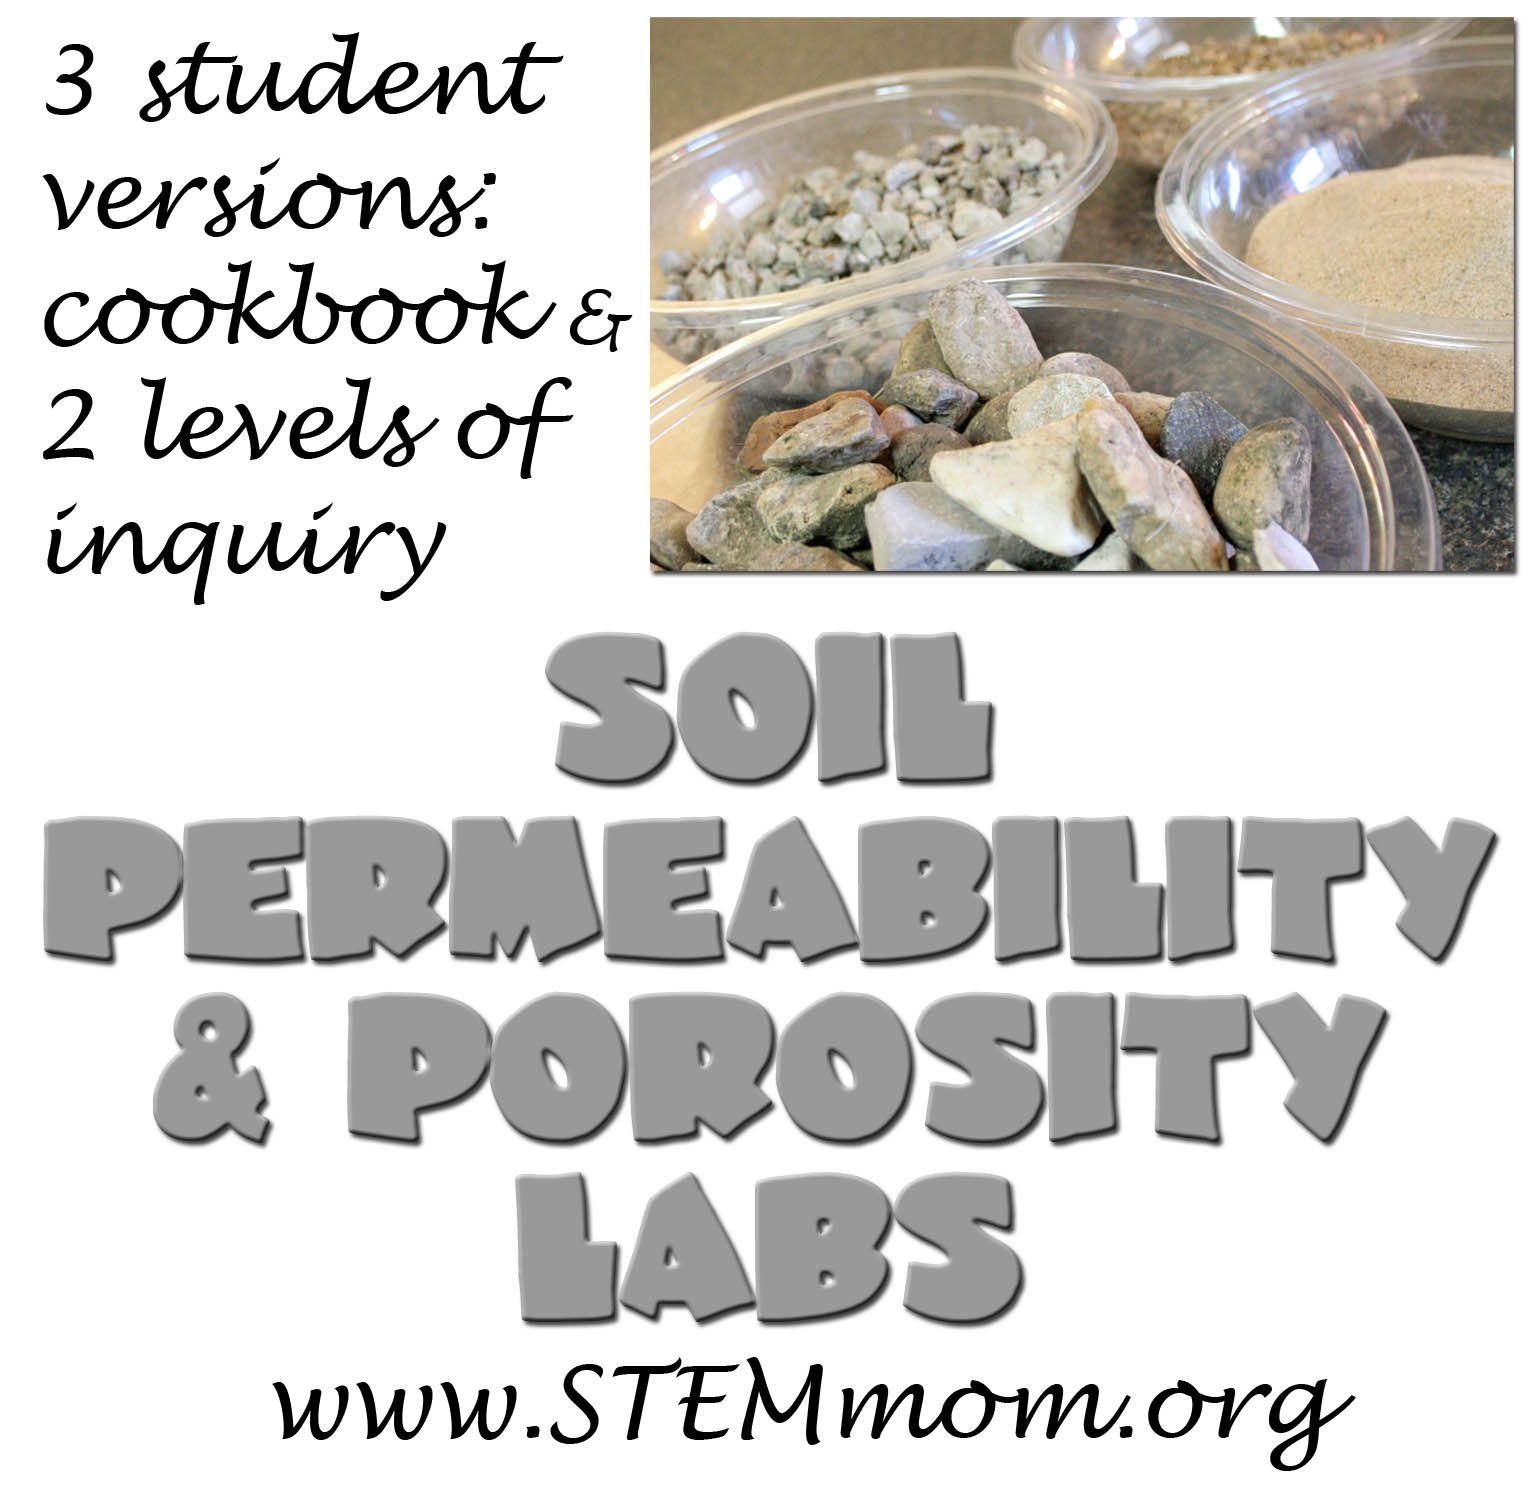 Soil Permeability And Porosity Lab